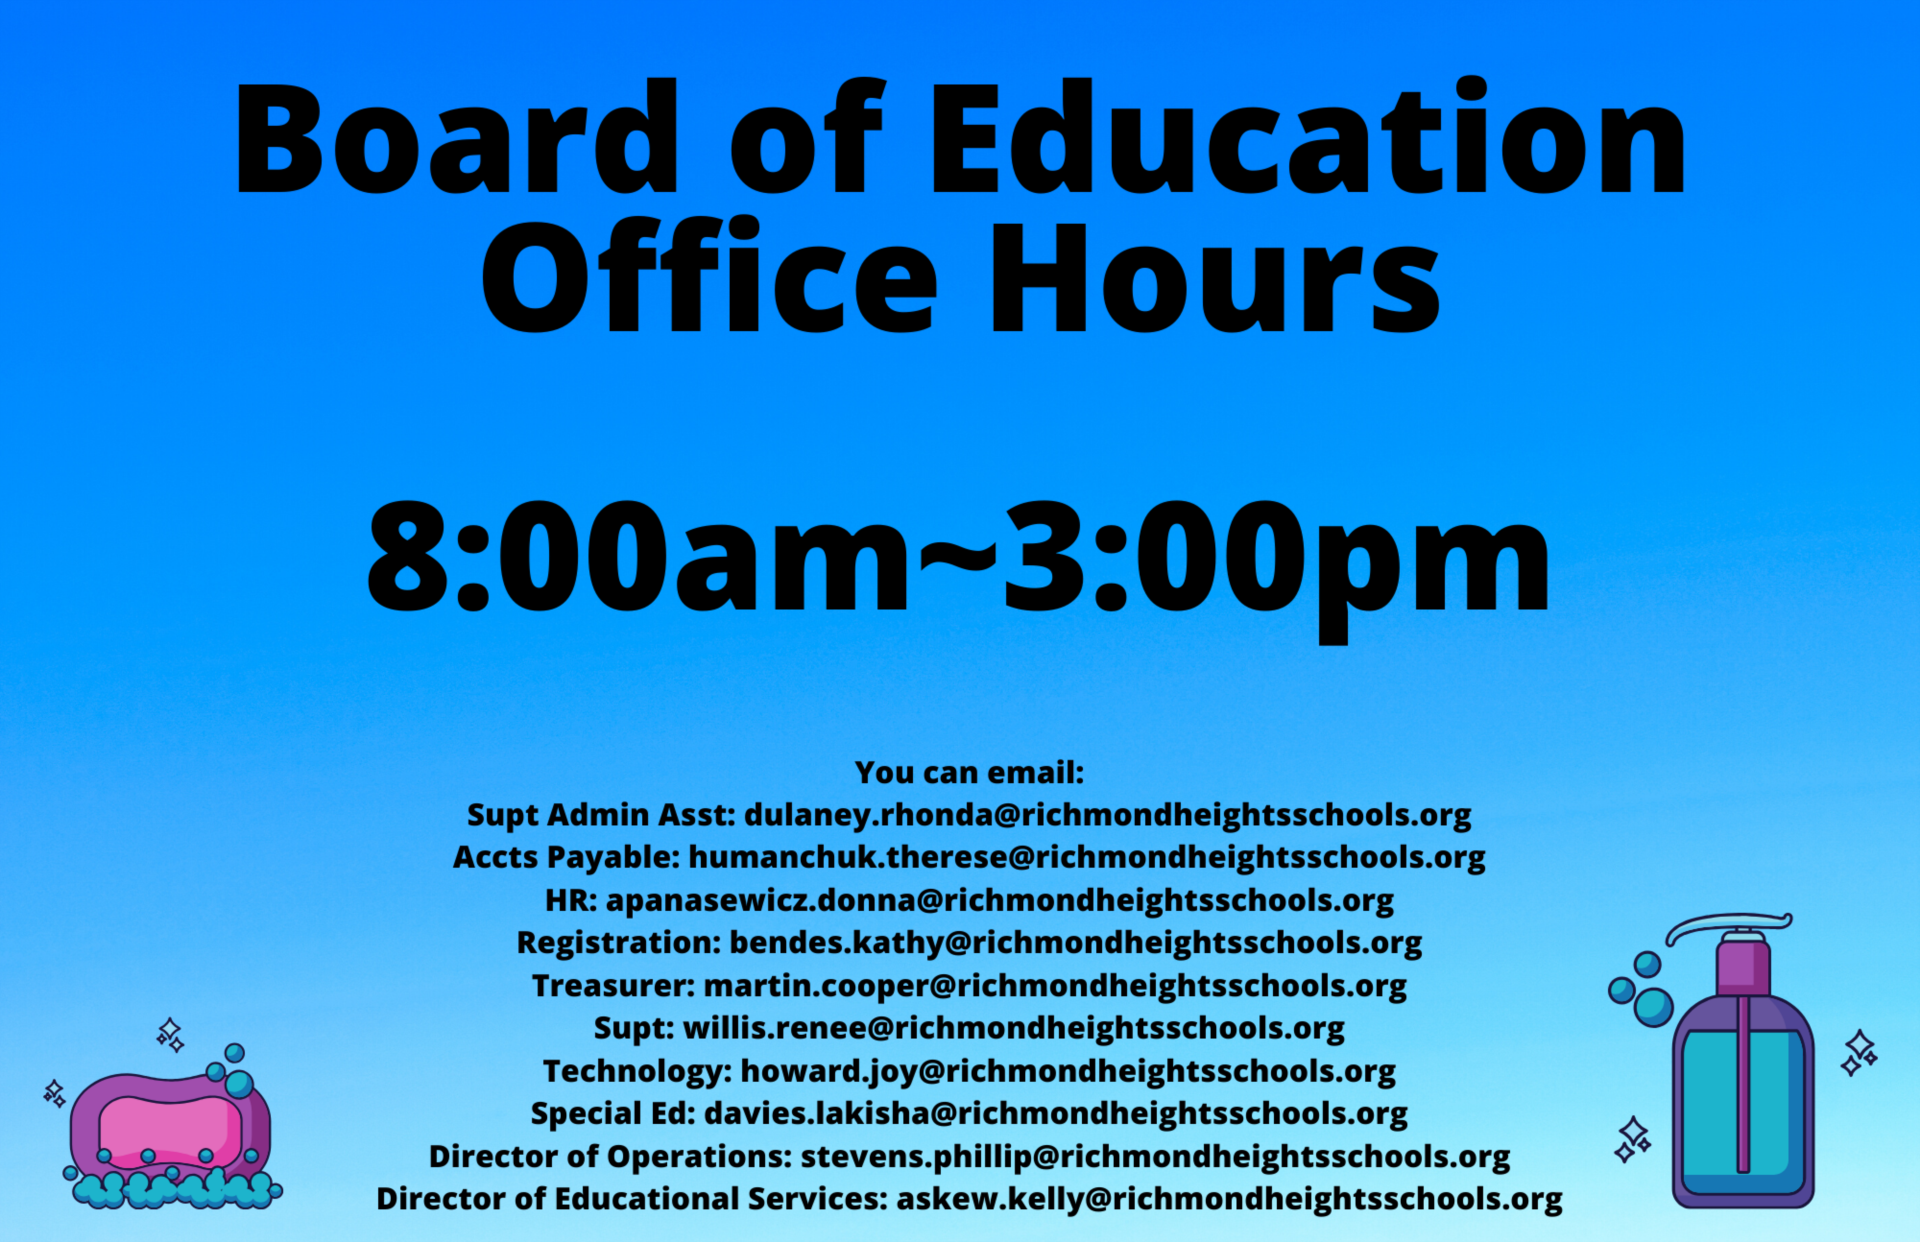 blue rectangle which reads Board of Education Office hours 8:00am-3:00pm and Secondary School hours 7:00am-3:00pm